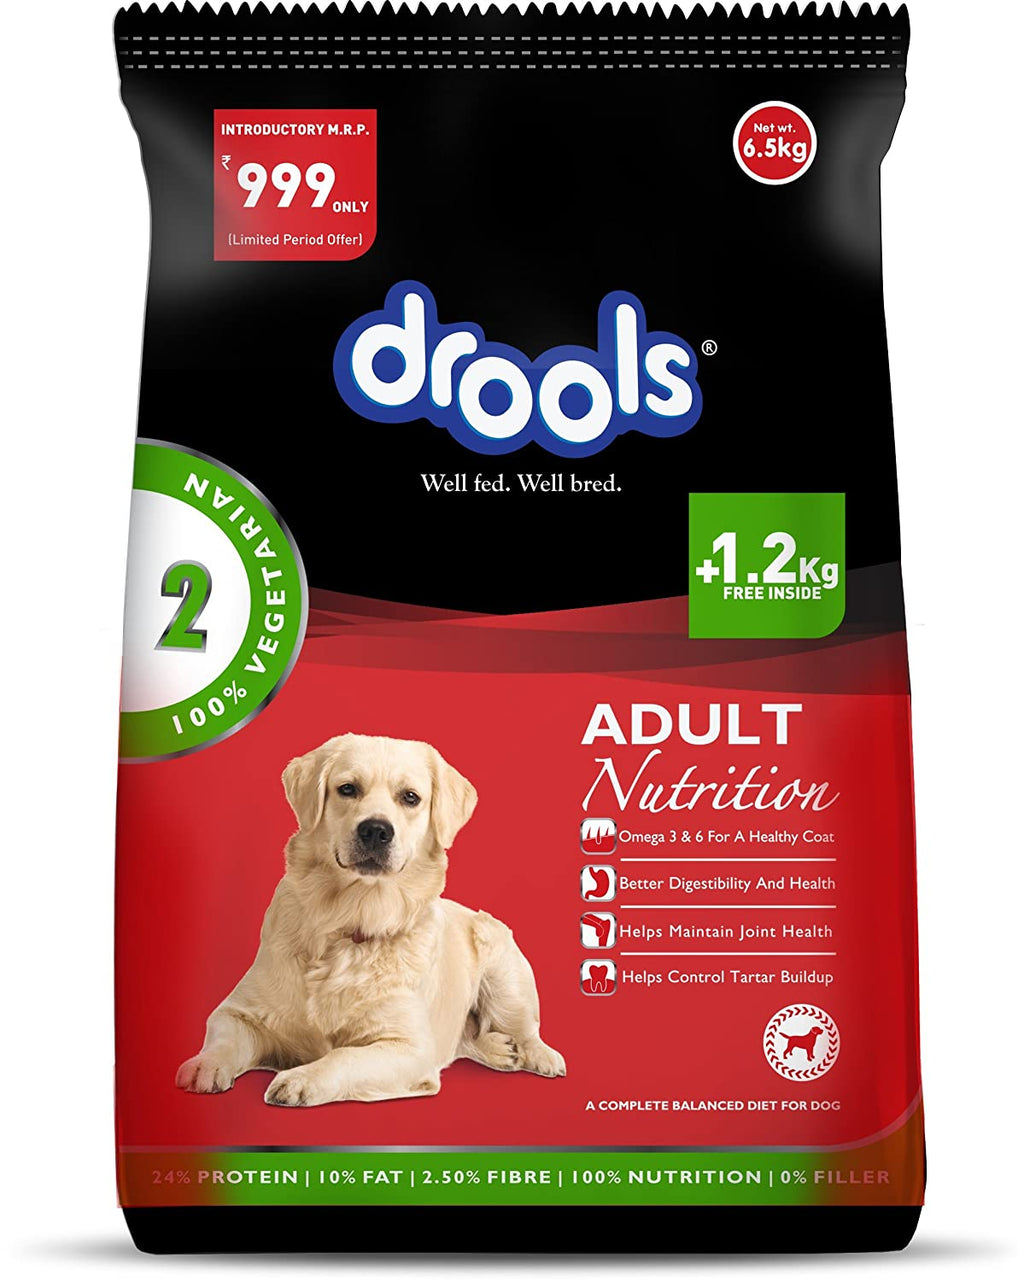 Drools 100% Vegetarian Adult Dog Food - Pet Chum